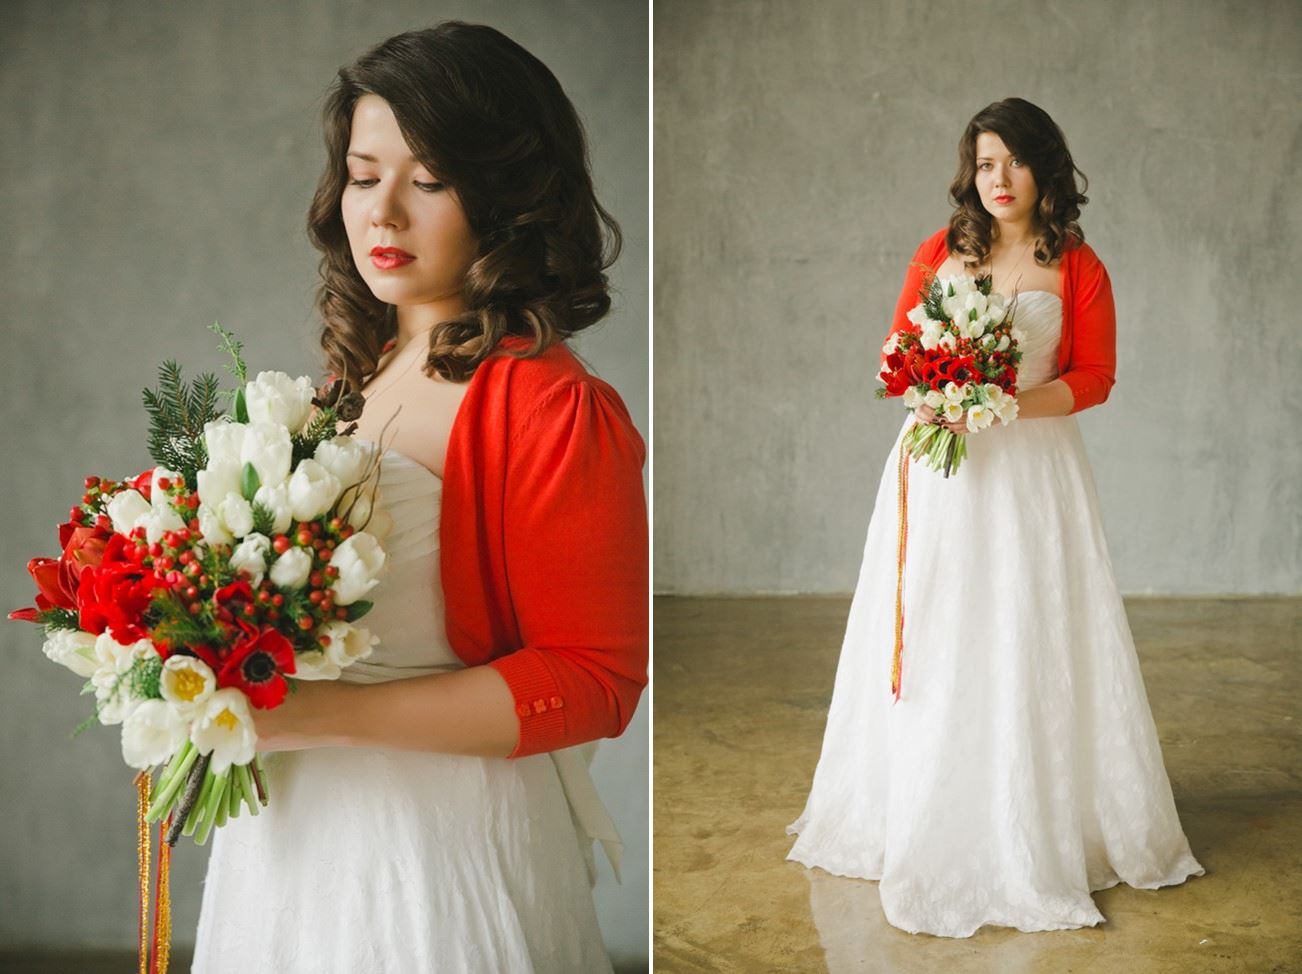 f6a18a72c7b ... Christmas Wedding Dress - A Cosy Winter Wedding Inspiration Shoot in  Red